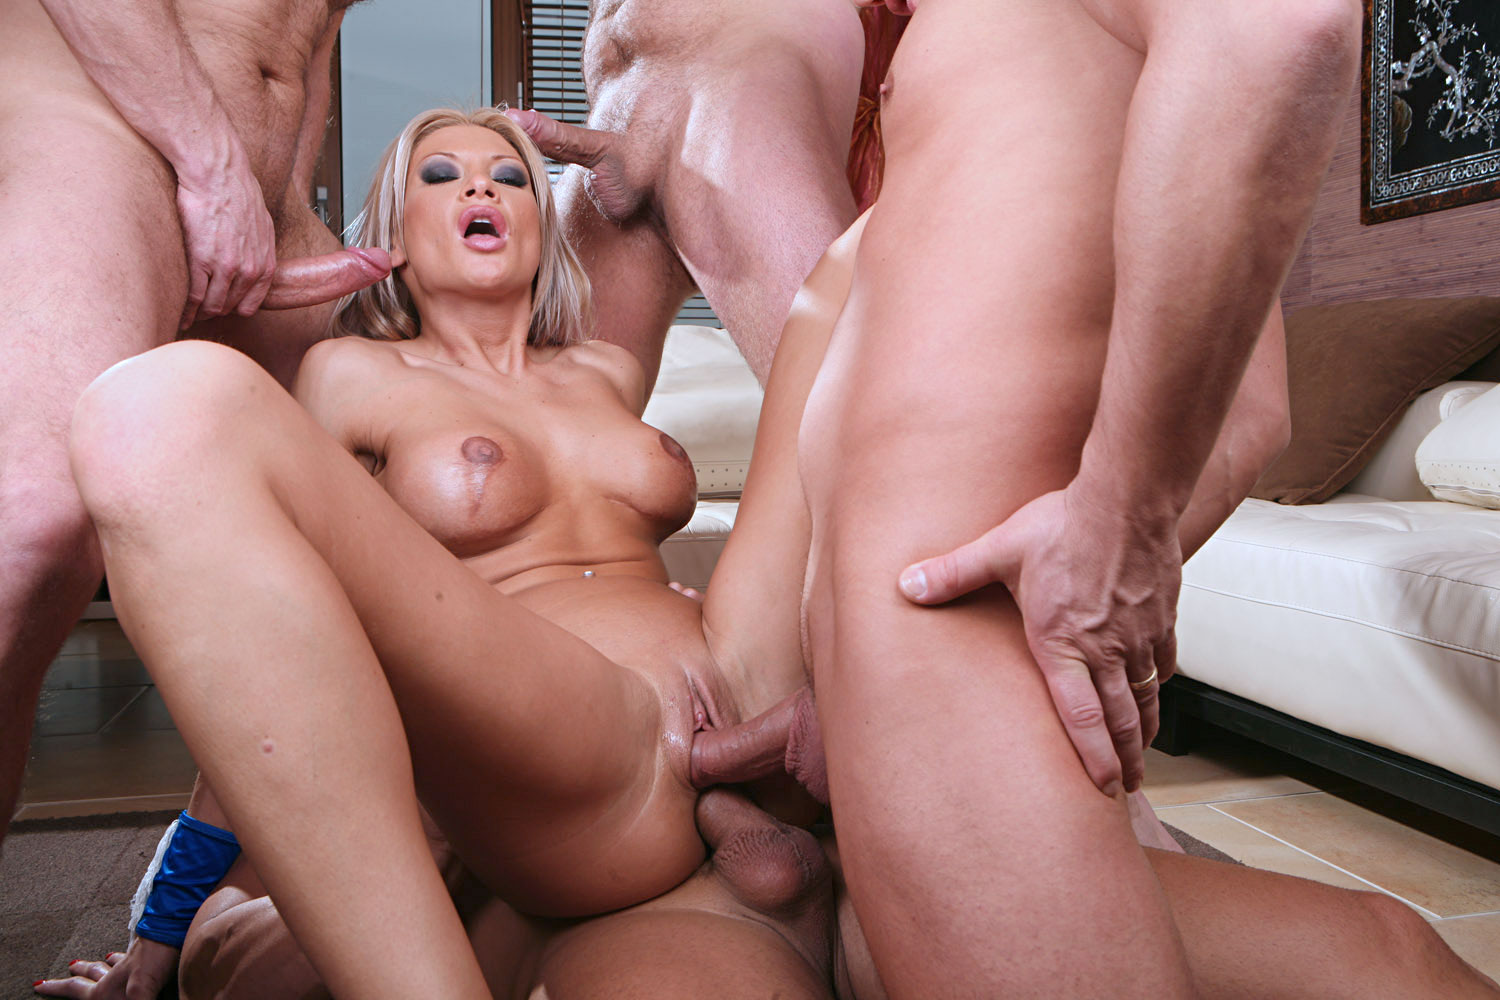 Extremexxx download xxx picture